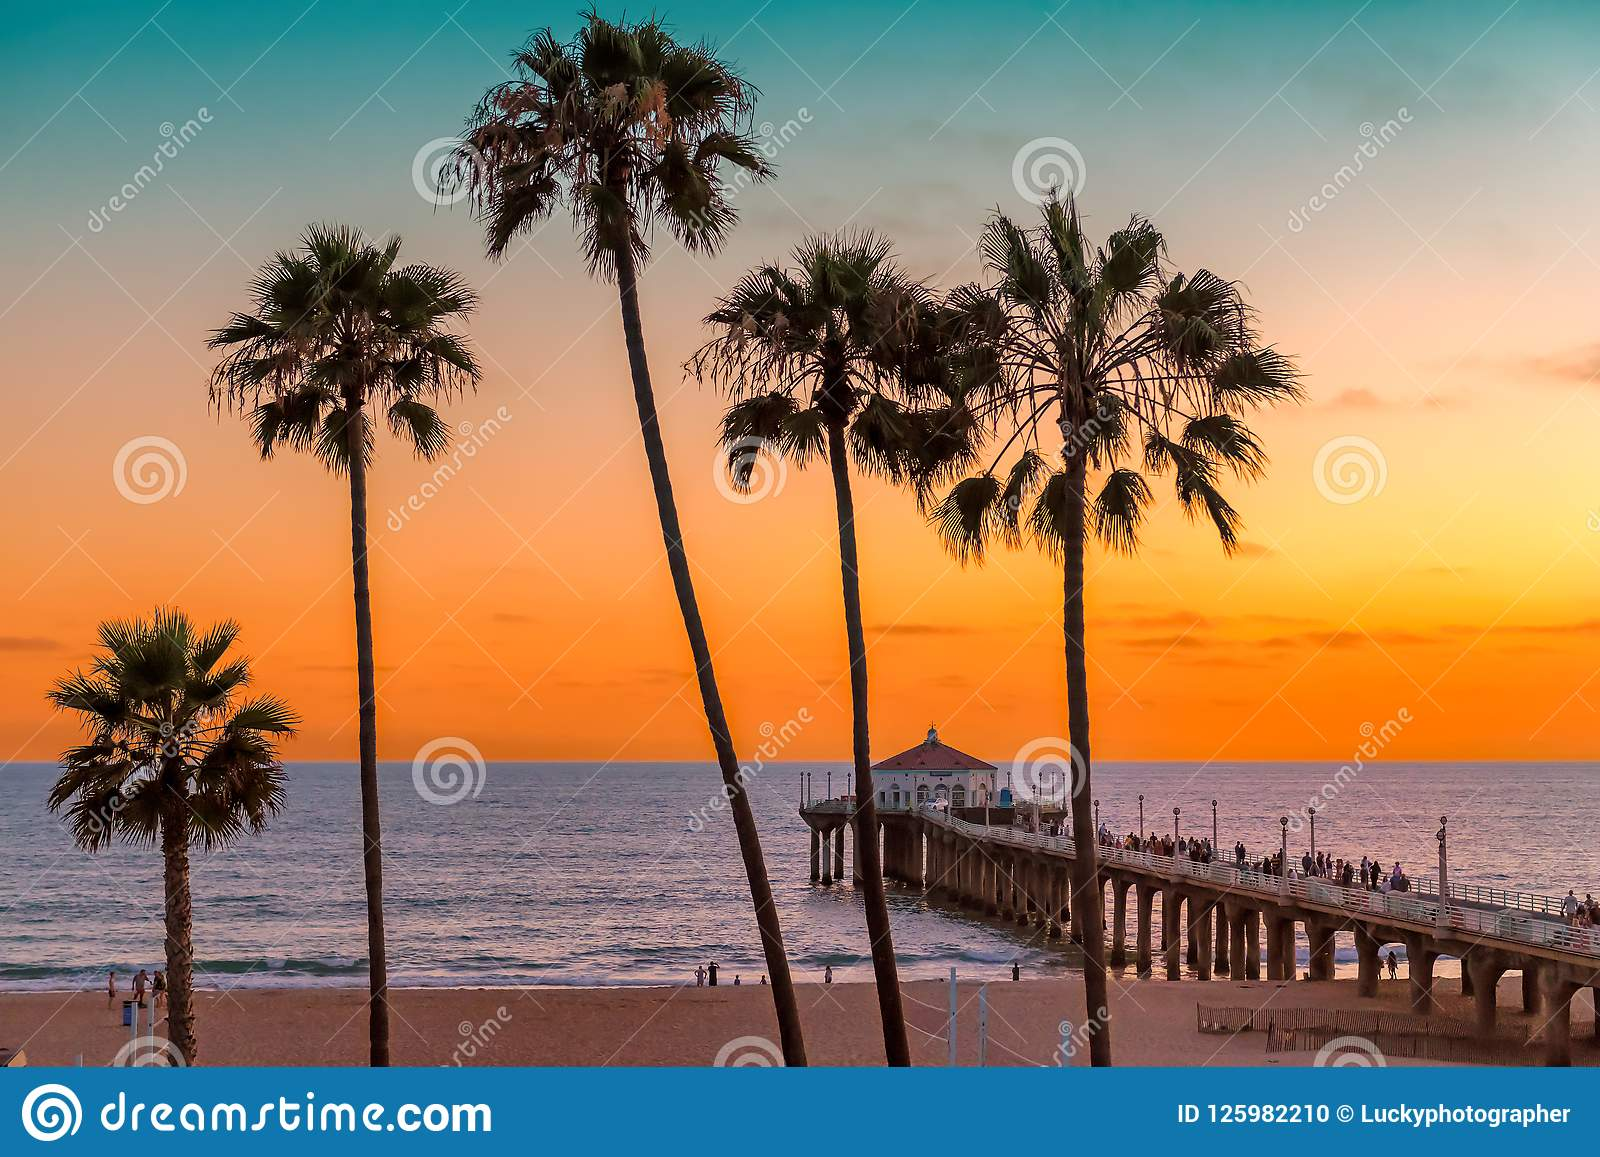 Manhattan Beach At Sunset In Los Angeles California Stock Photo Image Of City Landscape 125982210